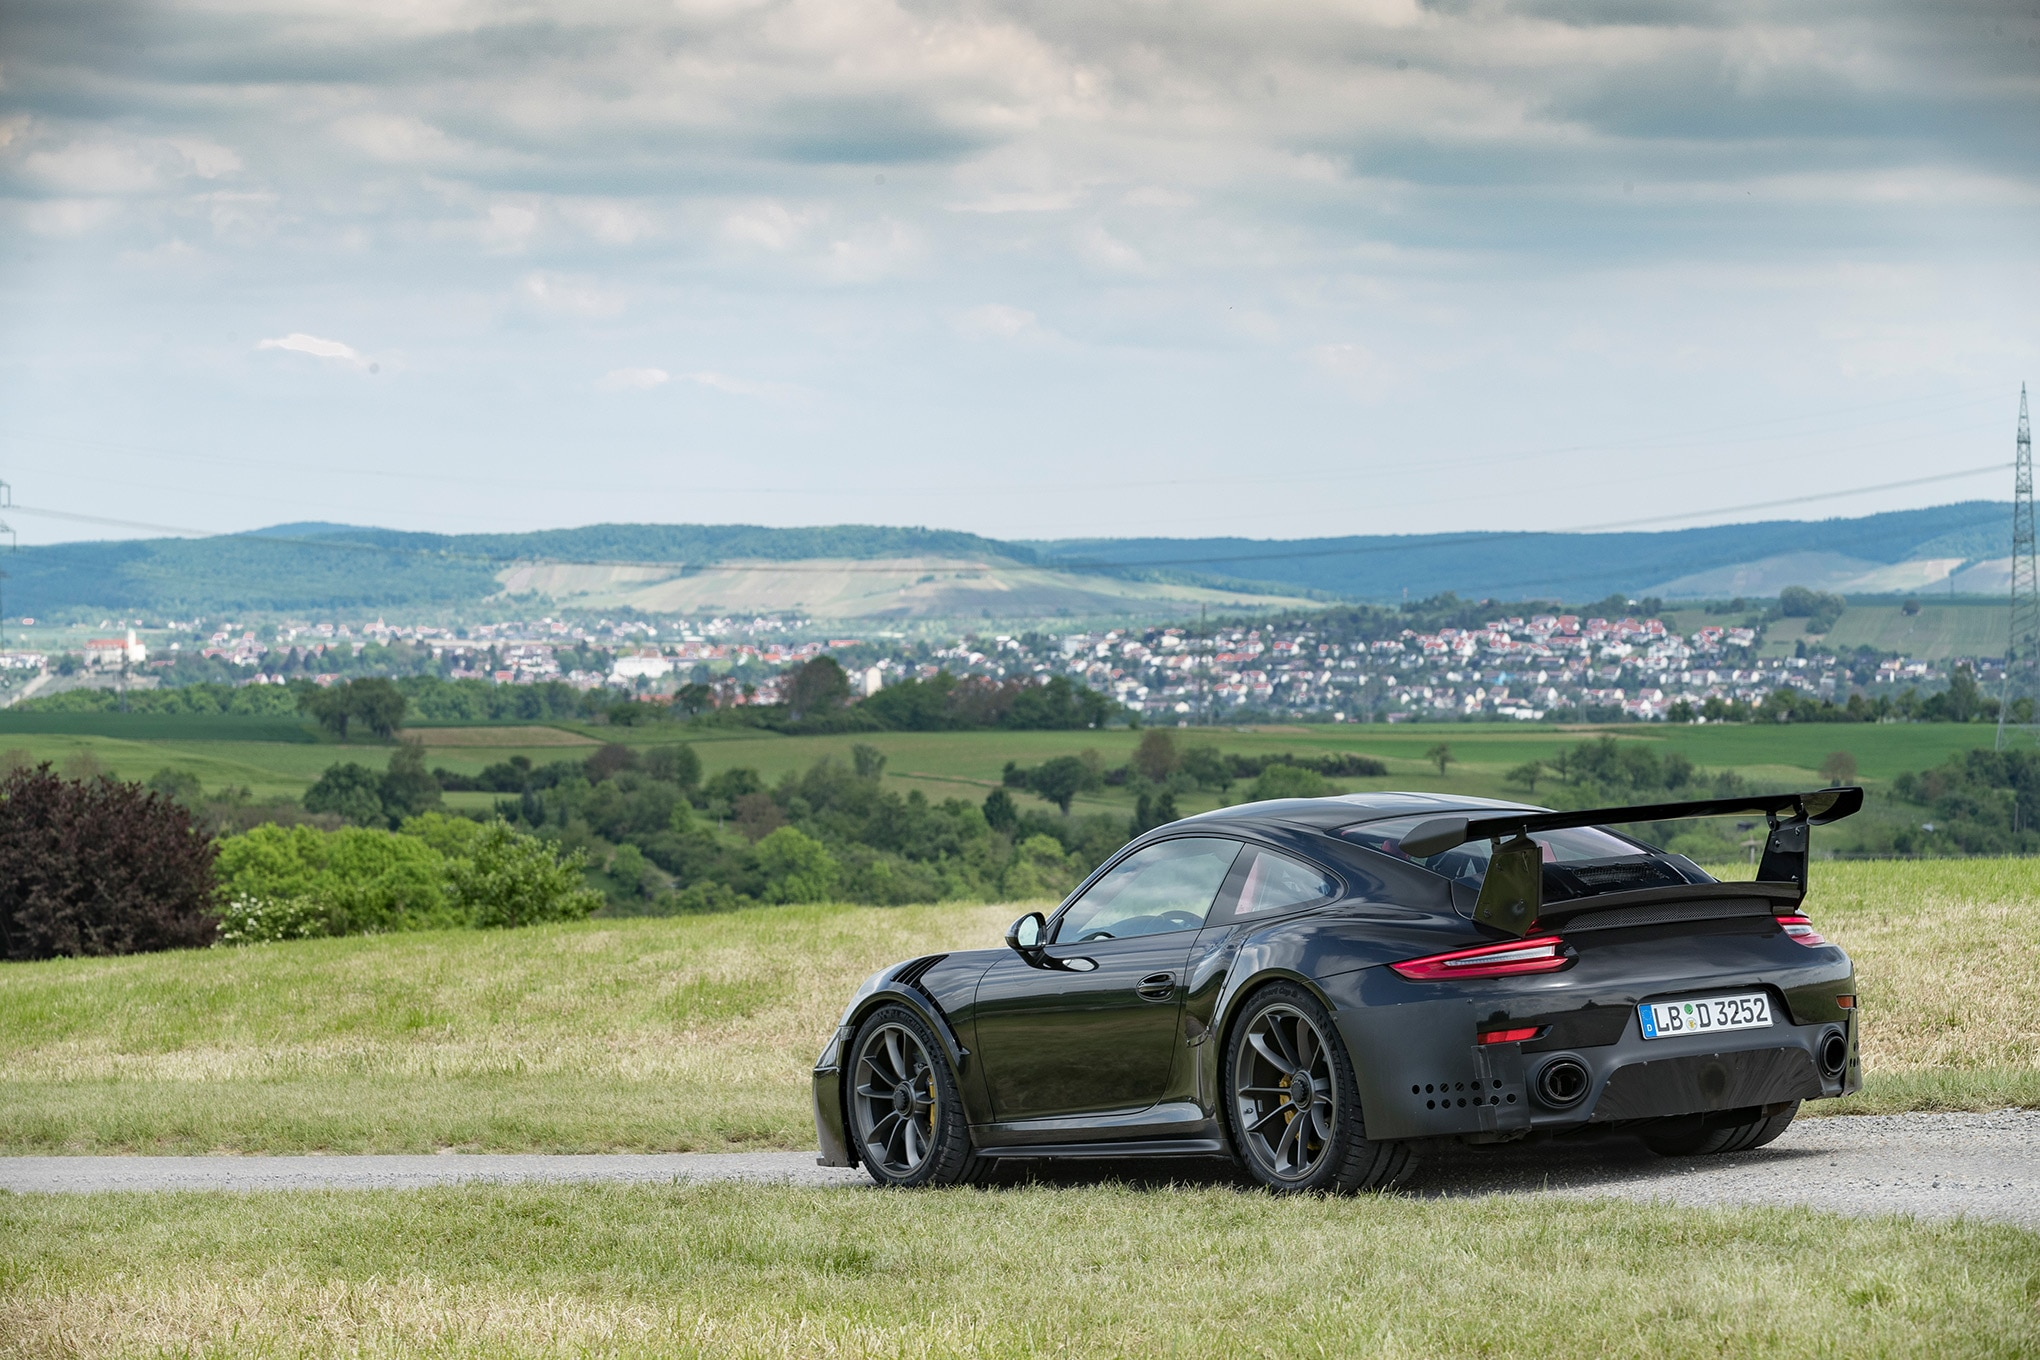 2018 Porsche 911 Gt2 Rs We Go For An Early Ride Automobile Magazine